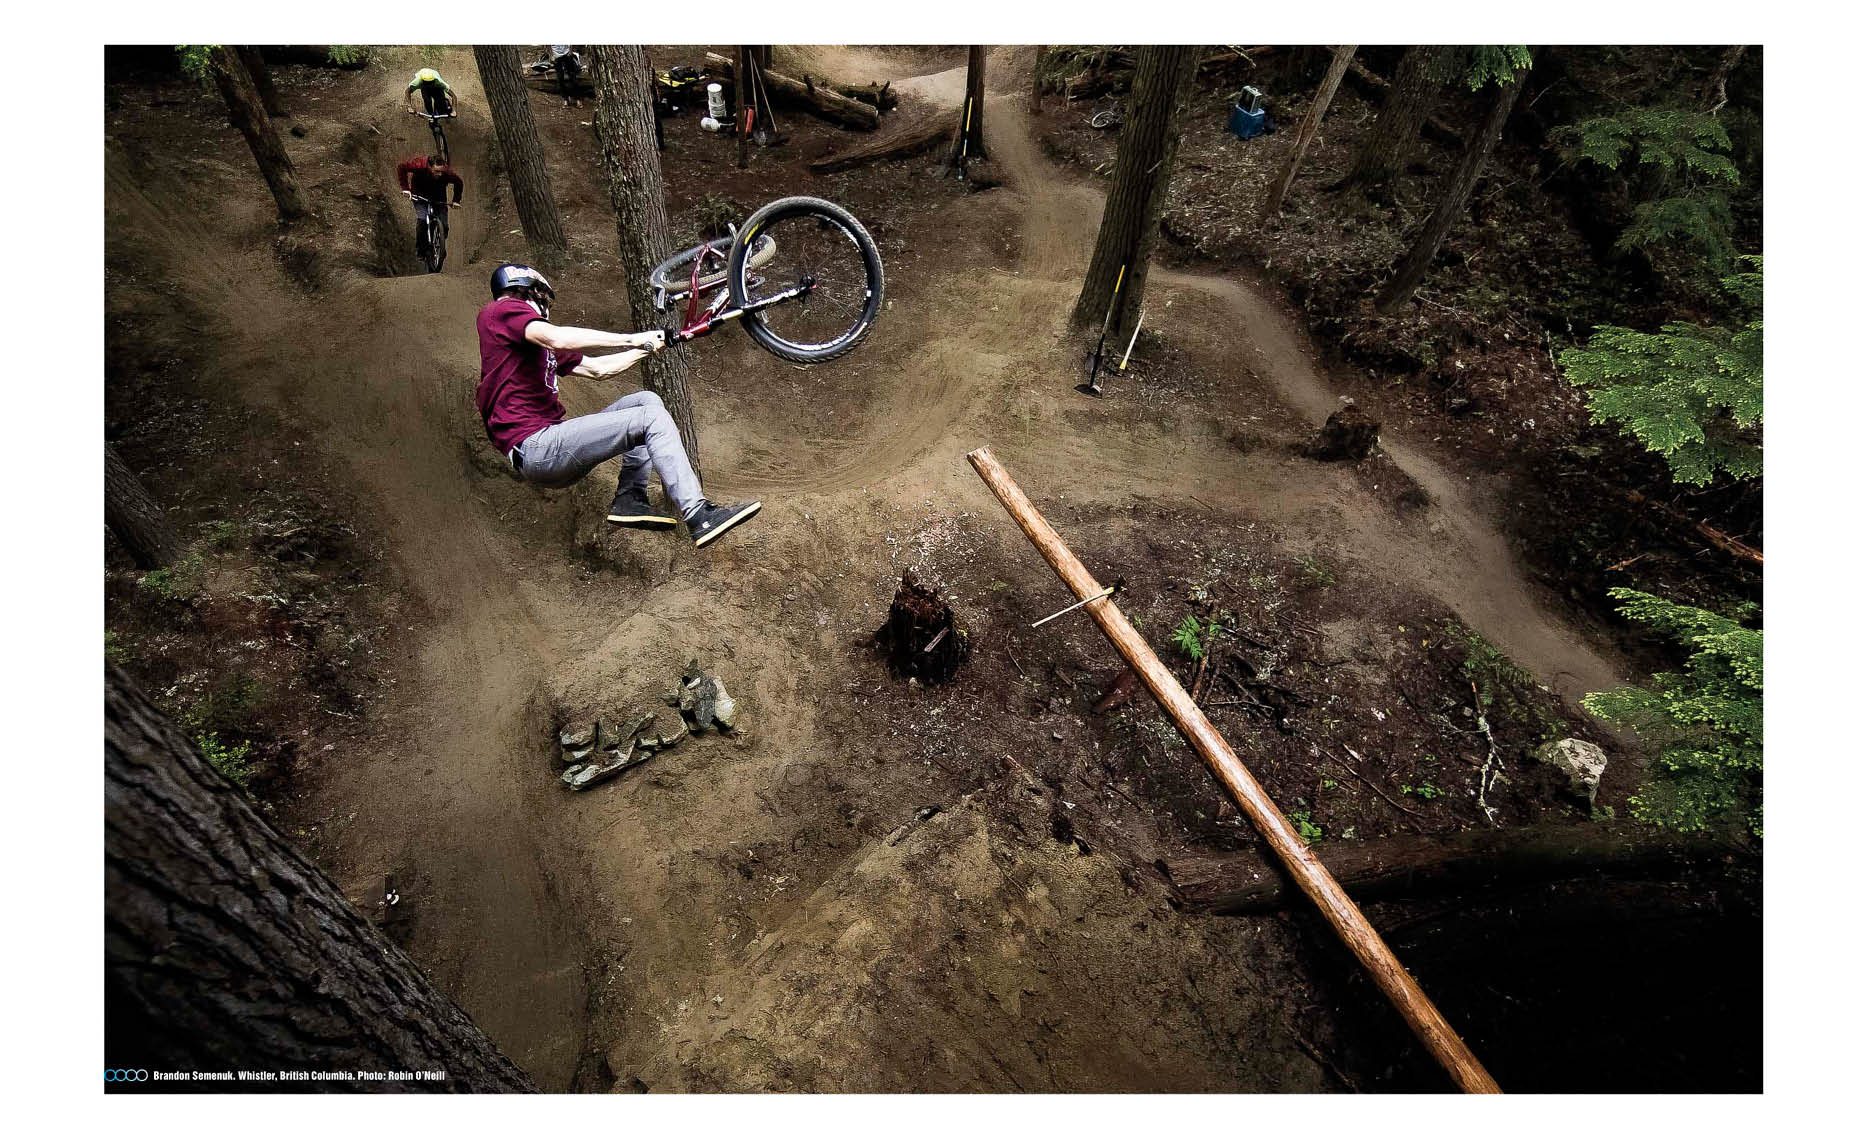 Brandon Semenuck bike jump in whistler forest overhead shot